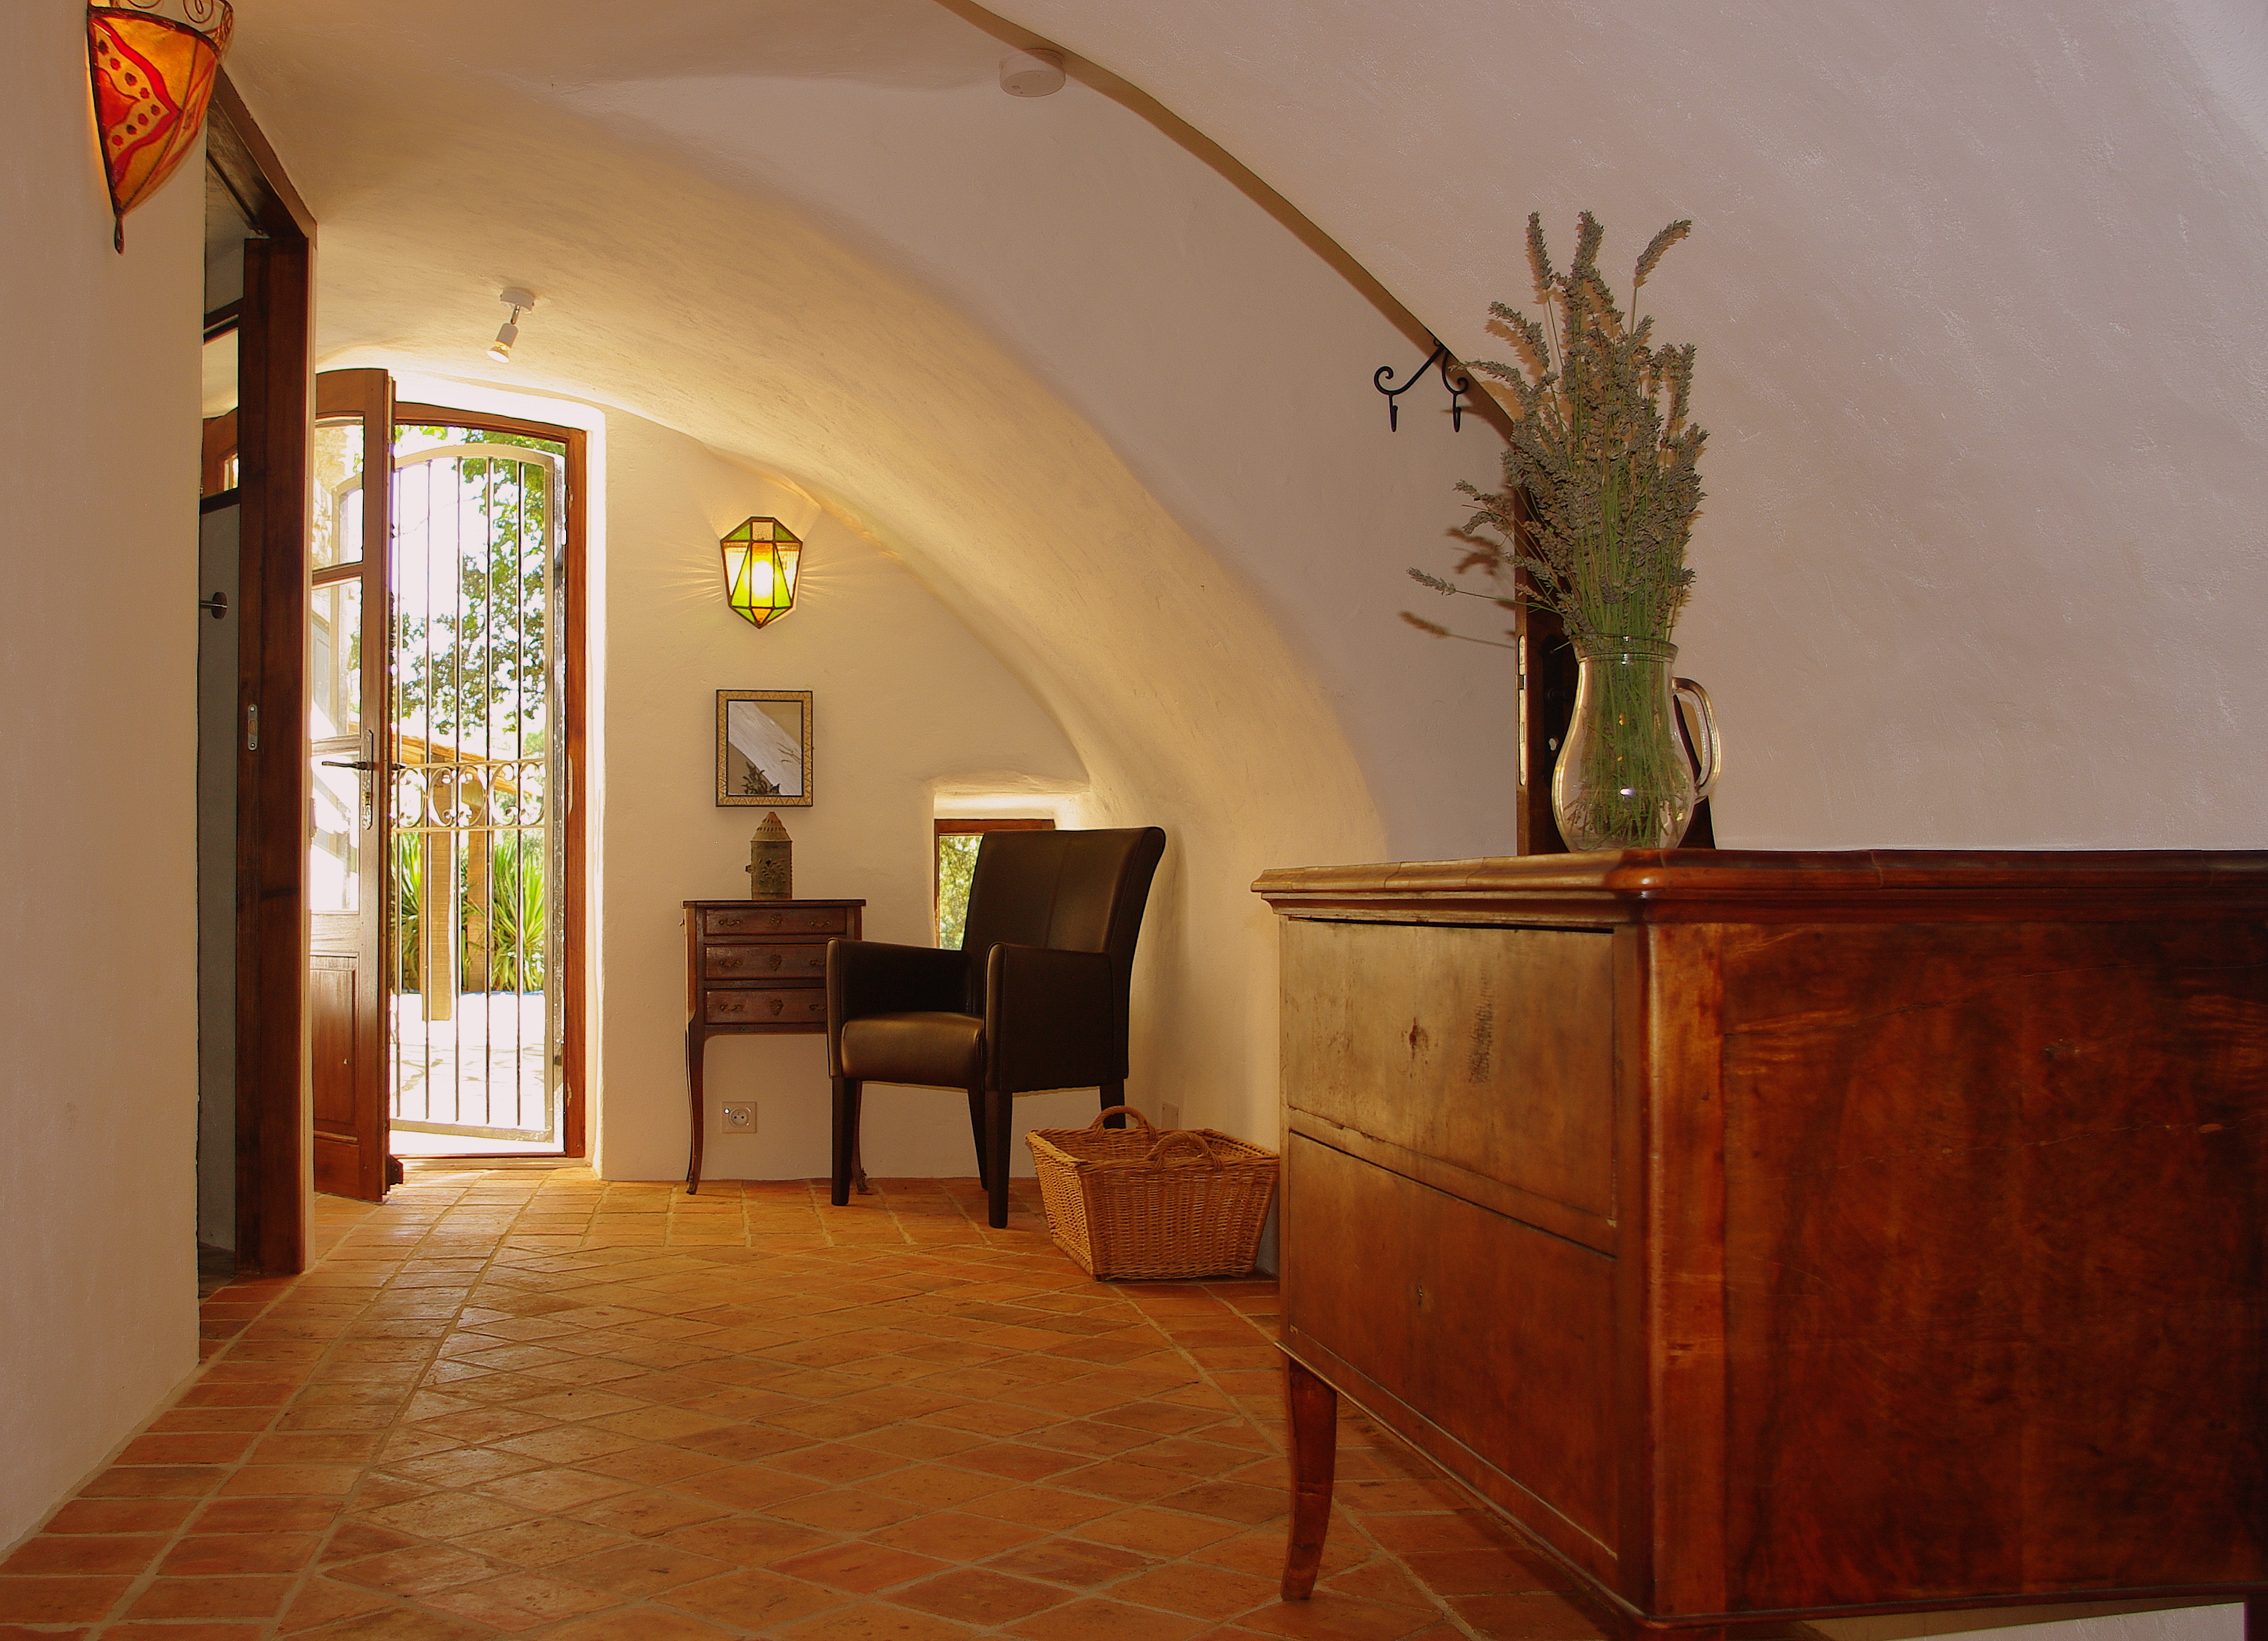 Vaulted hallway leading to entrance